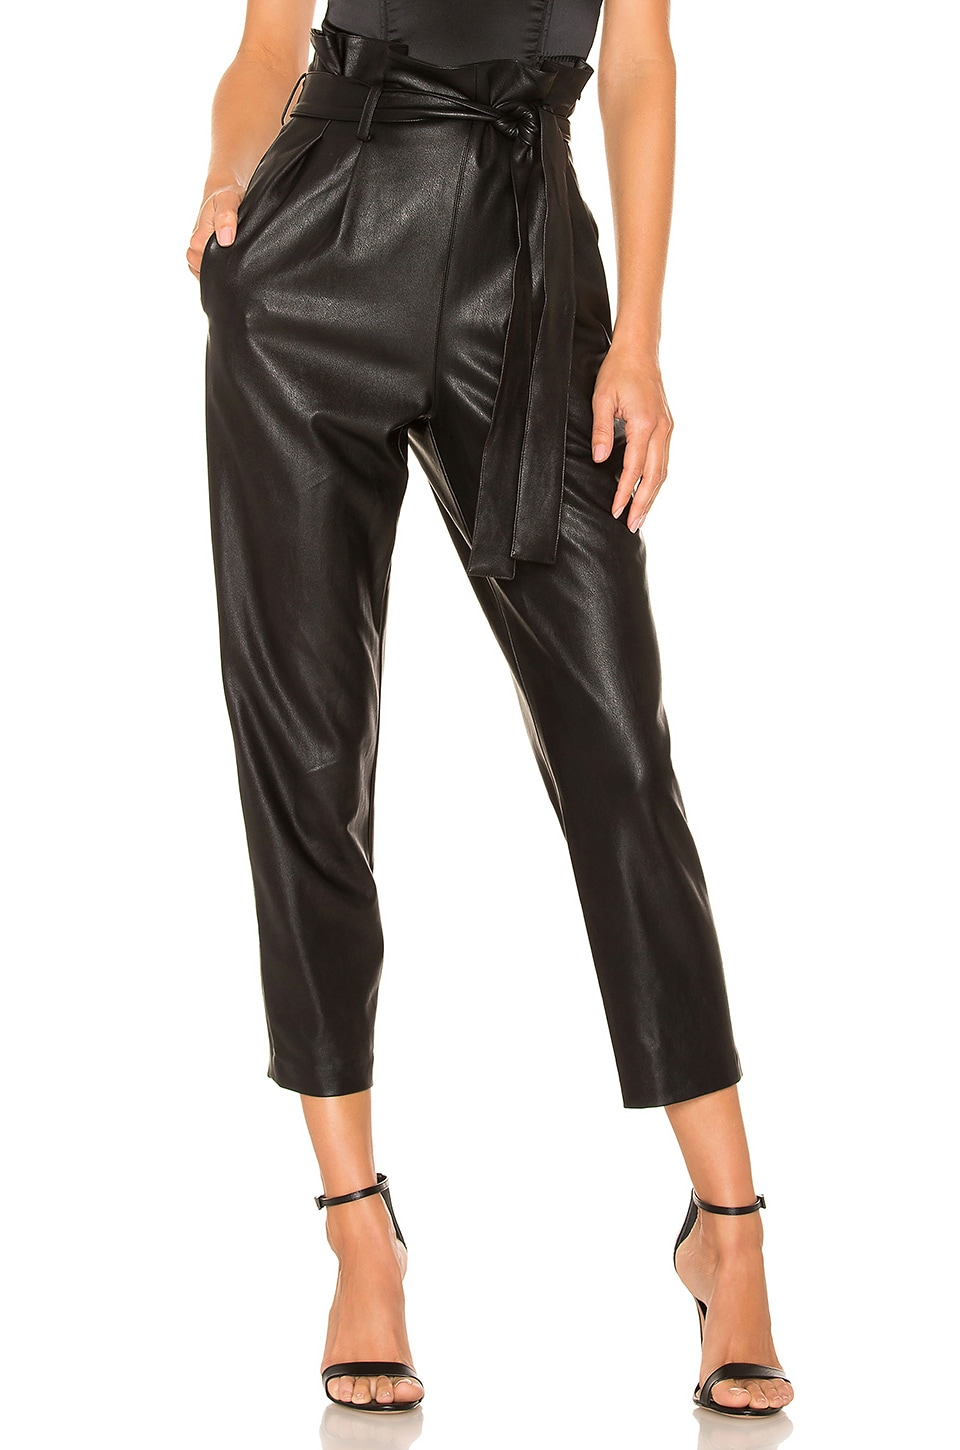 Amanda Uprichard Tessi Faux Leather Pant in Black